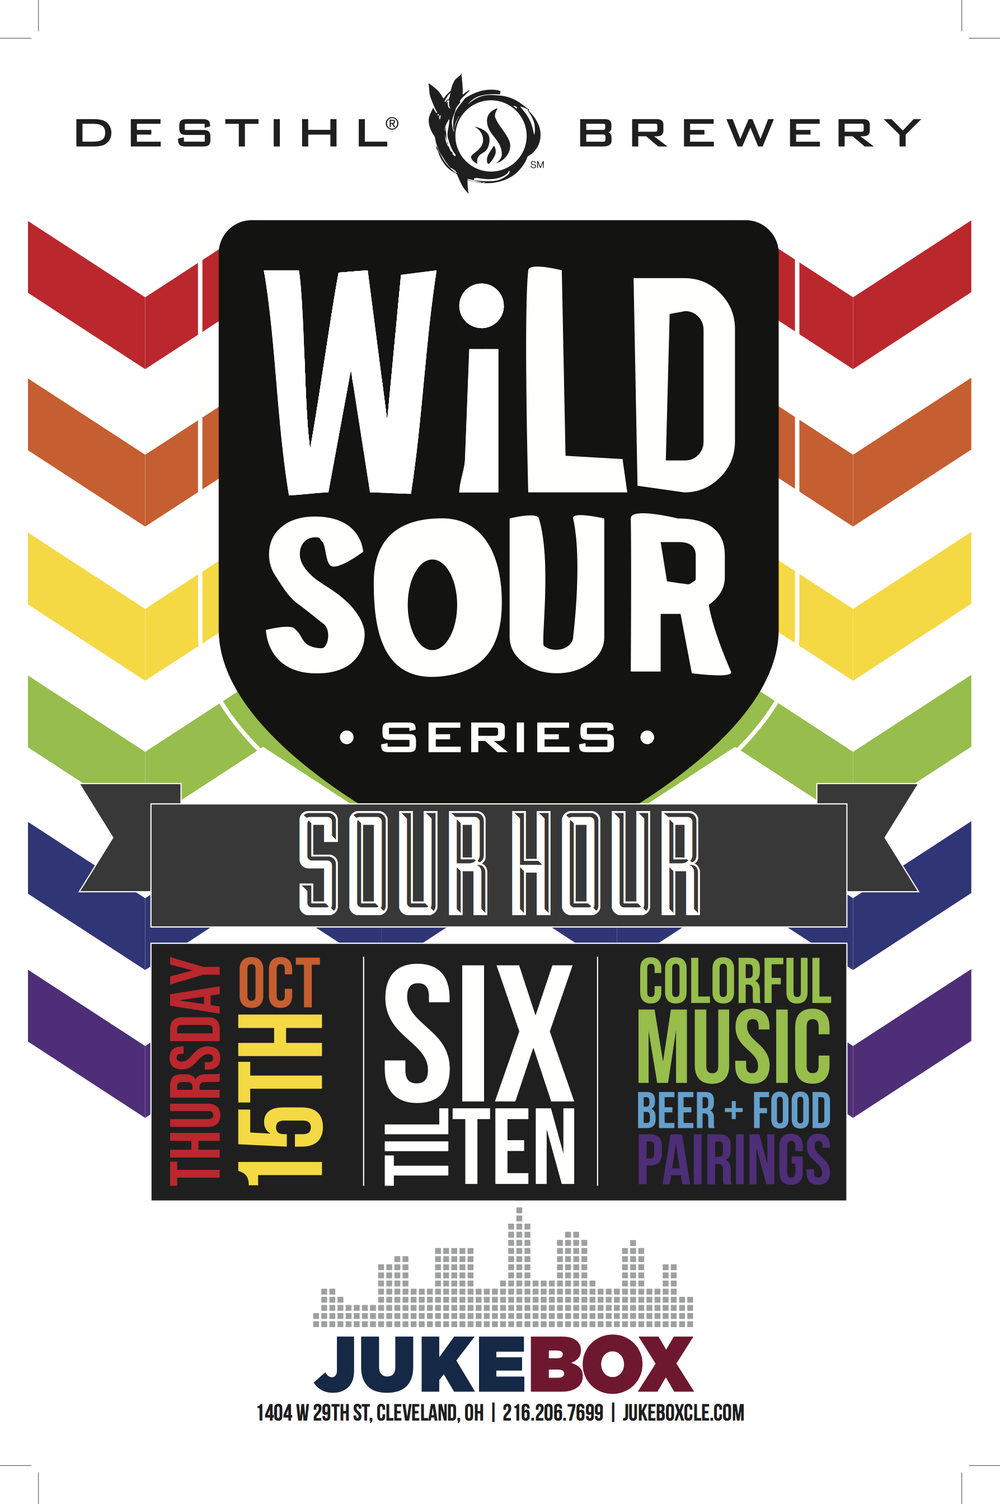 EXPECT A VARIETY OF DESTIHL BREWING'S SOUR SERIES. PROFILED OVER 4 HOURS, EACH SOUR WILL HAVE A MUSICAL COMPLIMENT FOR EACH COLORFUL FLAVOR. PLUS FOOD PAIRINGS & DISCOUNTS. DETAILS BELOW: 6PM - ADAMBIER (PURPLE) W/ PRINCE, PURPLE RAIN 7PM - COUNTER CLOCKWEISSE (YELLOW) W/ ELTON JOHN, GOODBYE YELLOW BRICK ROAD 8PM - HERE GOSE NOTHIN' (GREEN) W/ CREEDENCE CLEARWATER REVIVAL, GREEN RIVER 9PM - LYNNBROOK RASPBERRY (PINK) W/ THE BAND, MUSIC FROM BIG PINK